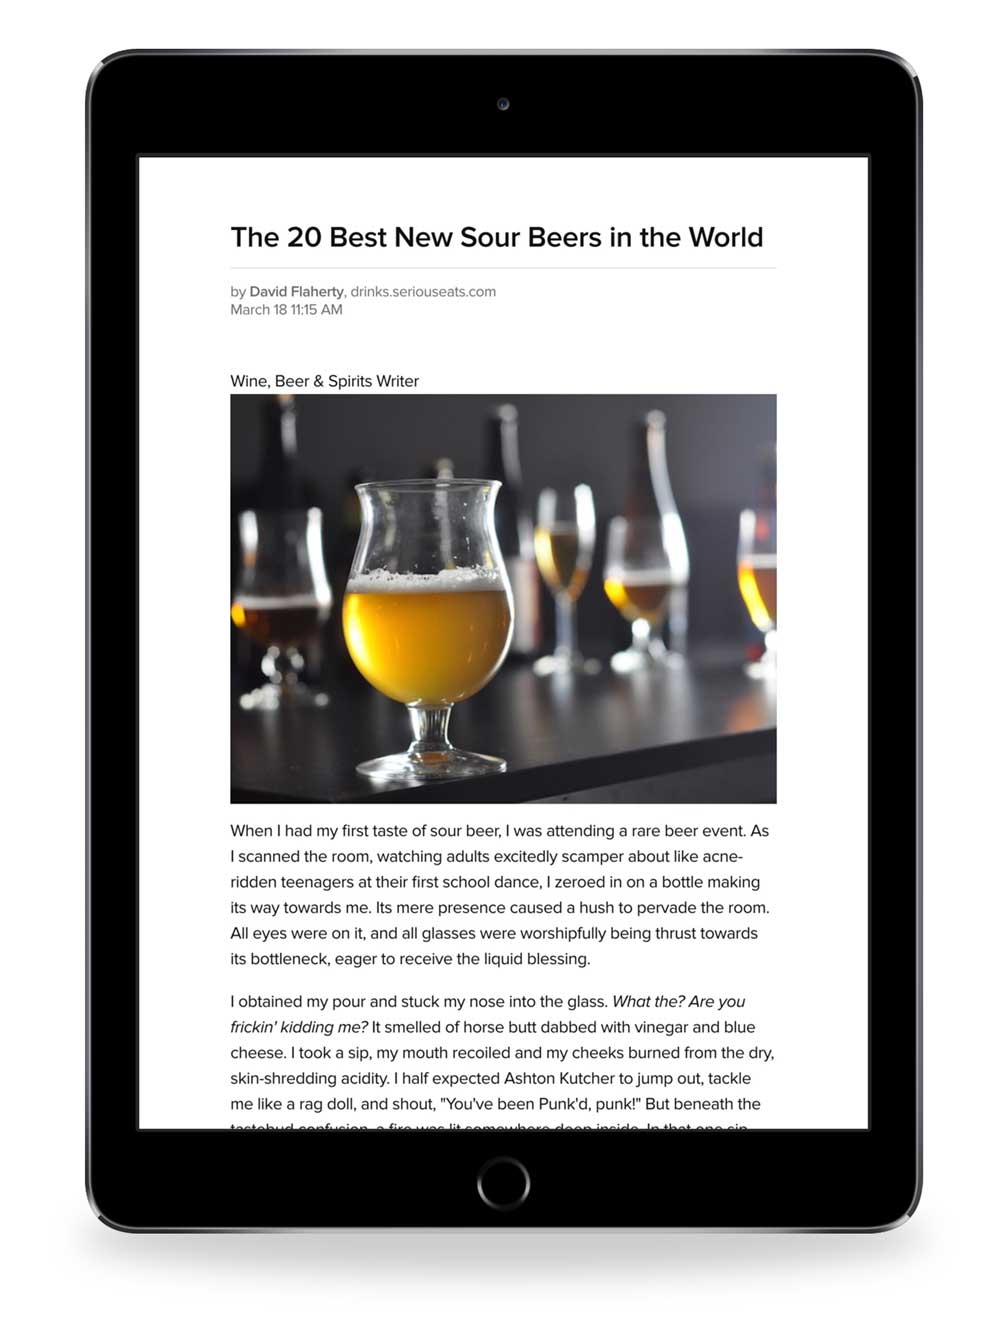 screenshot 14 Pocket view of beer article